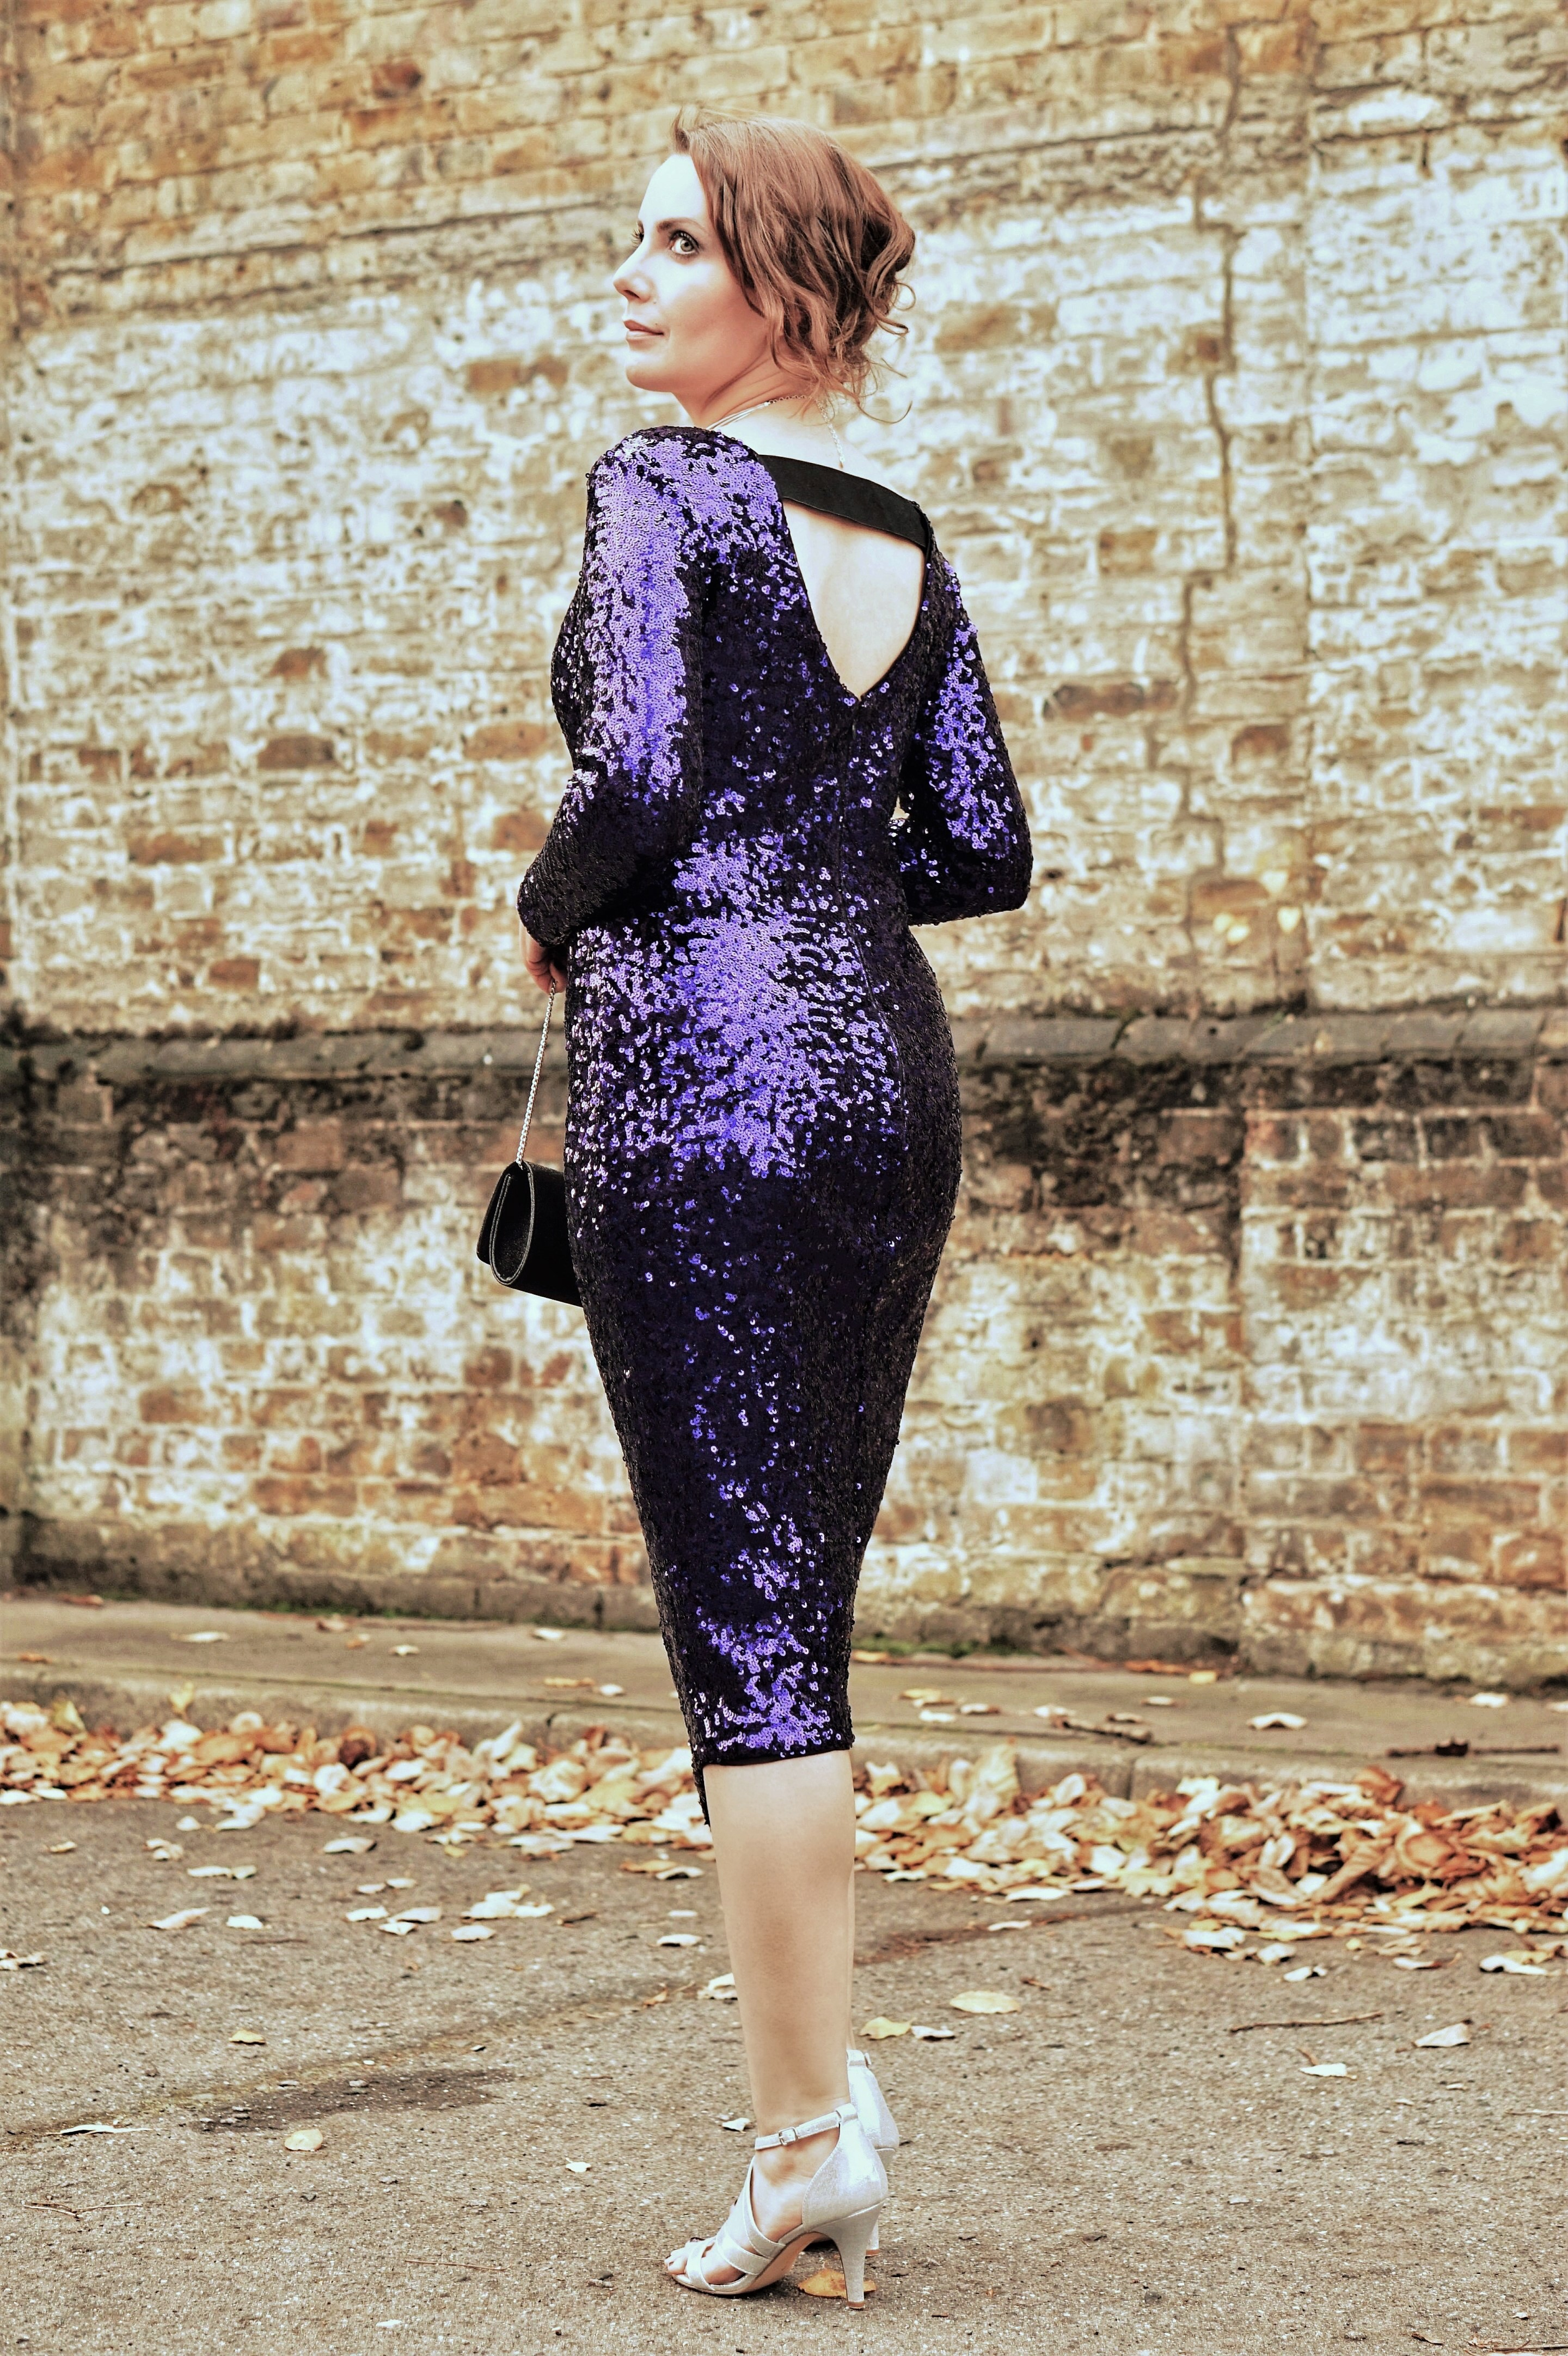 Style inspiration: purple sequin long sleeve midi length party dress, silver shoes, leaf ear climber, clutch bag.